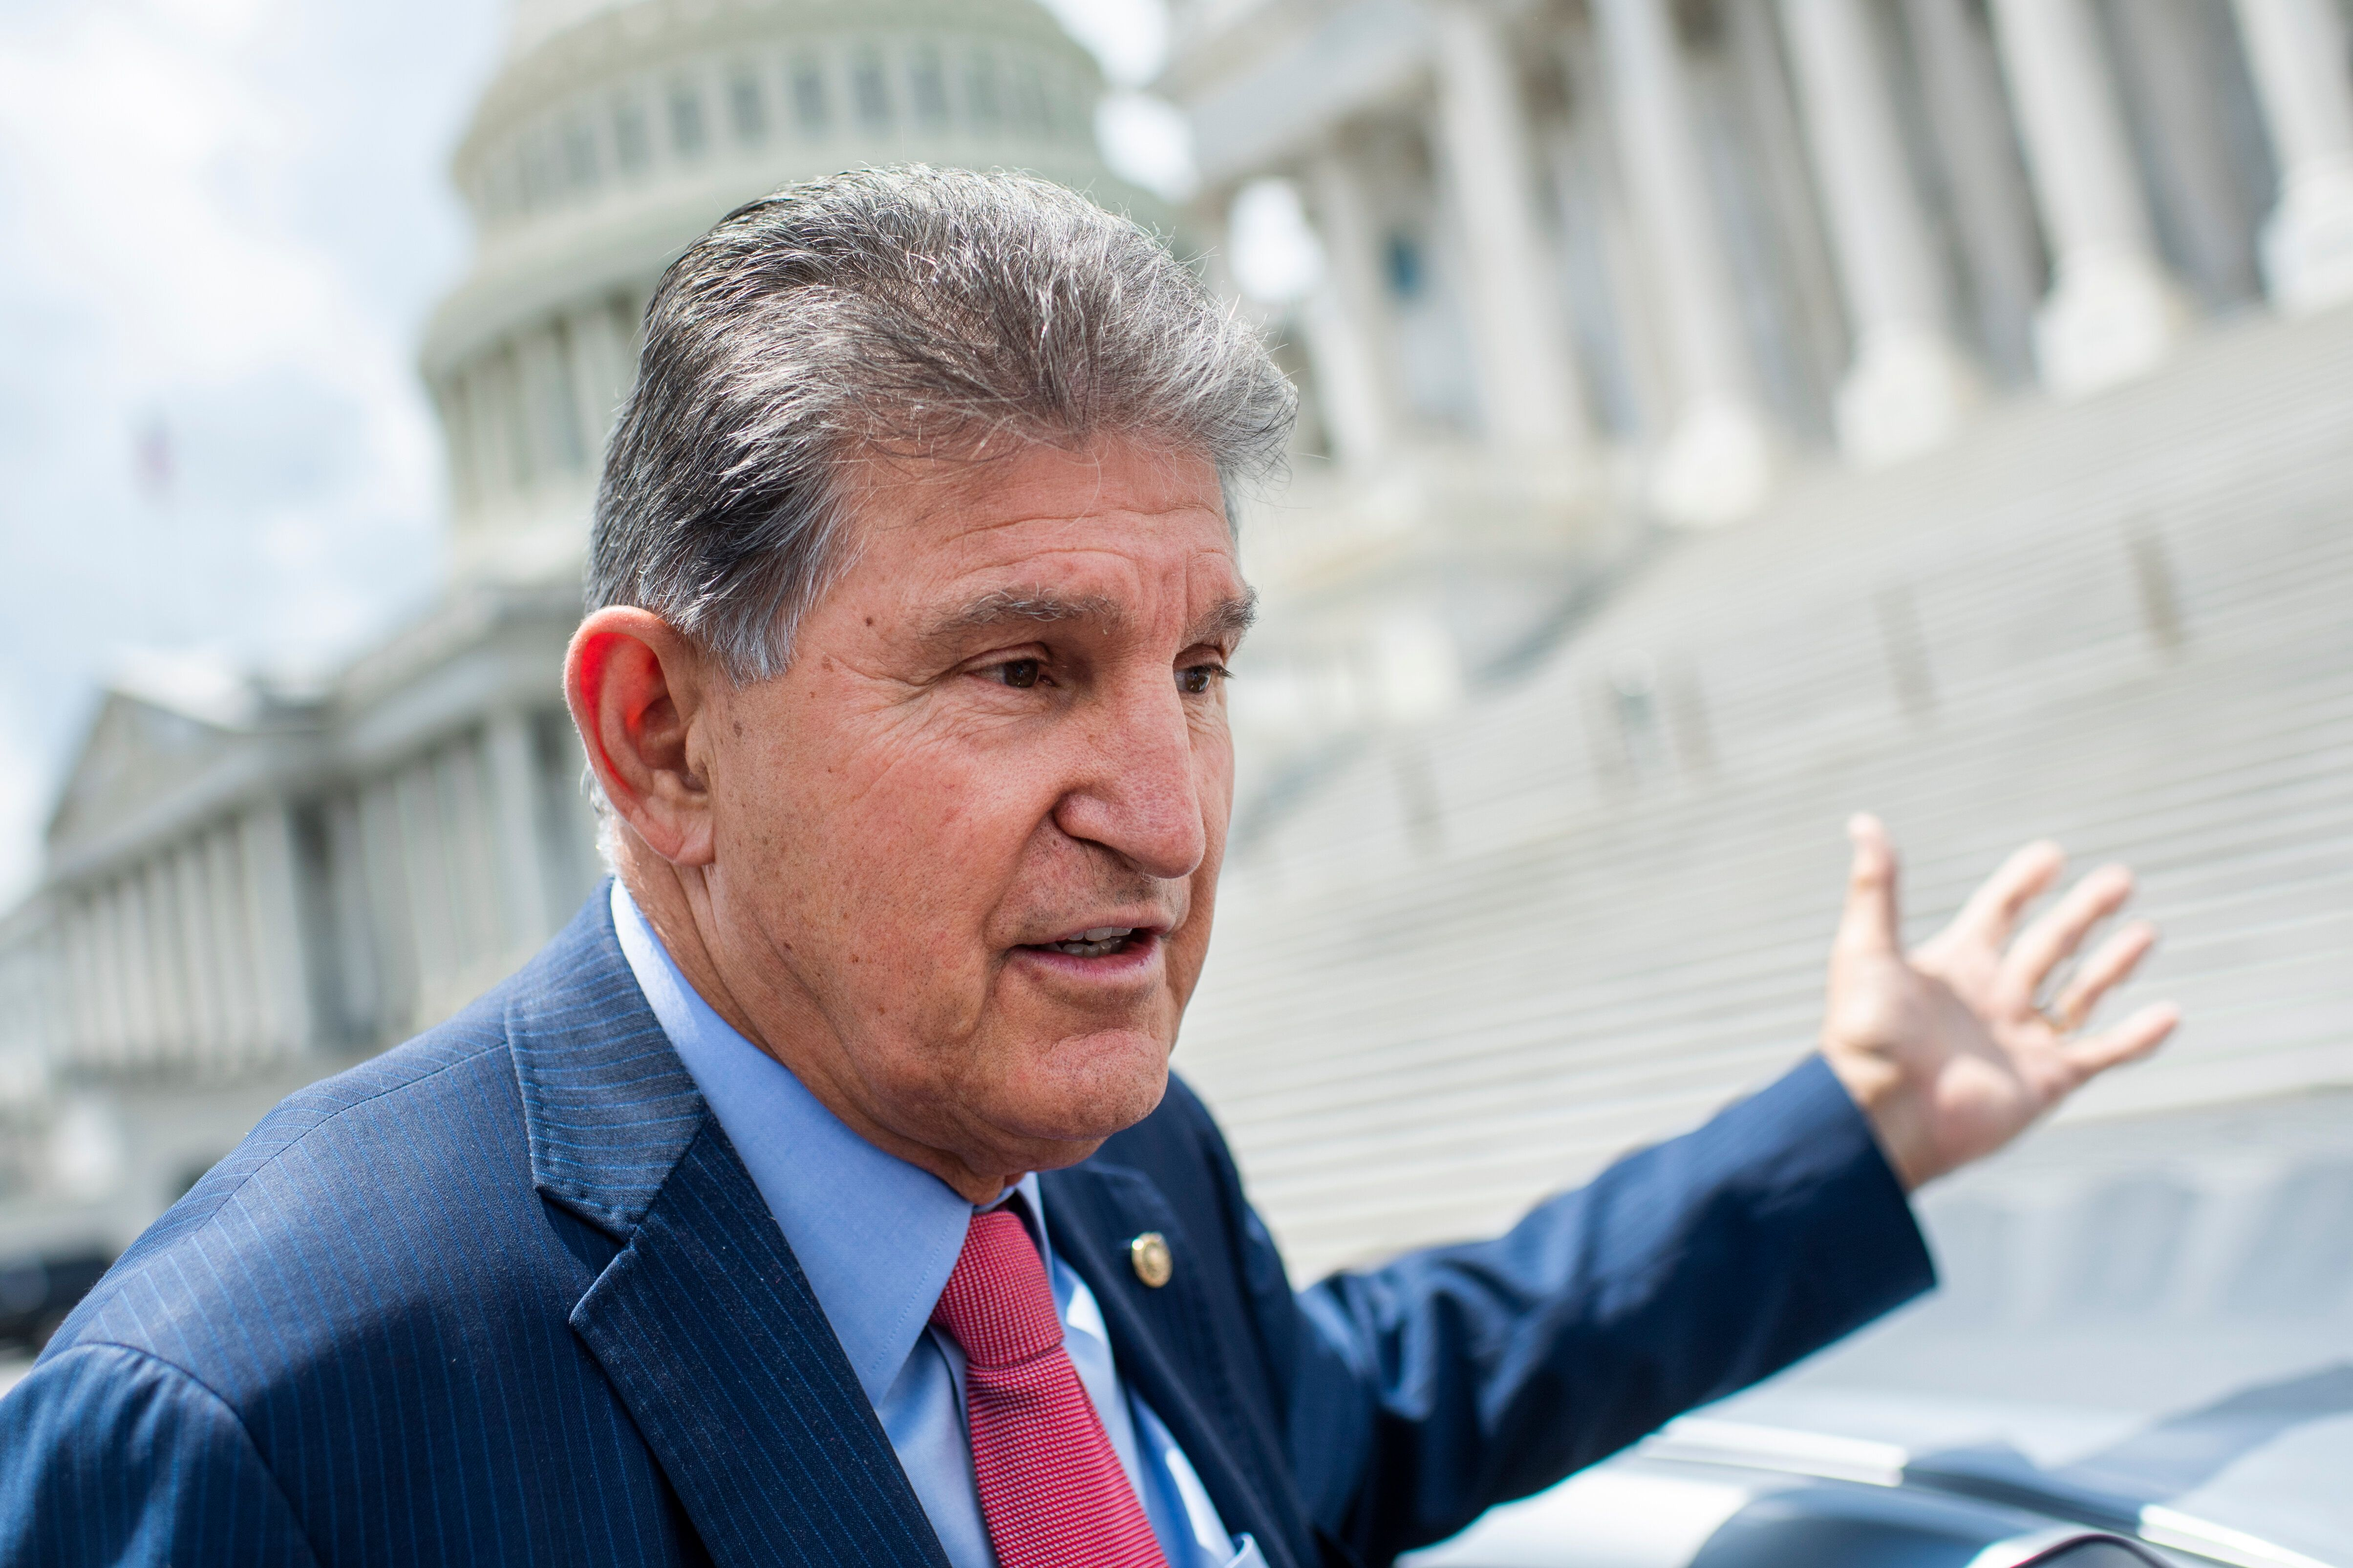 Sen. Joe Manchin (D-W.Va.) does not support the For the People Act as it currently exists.